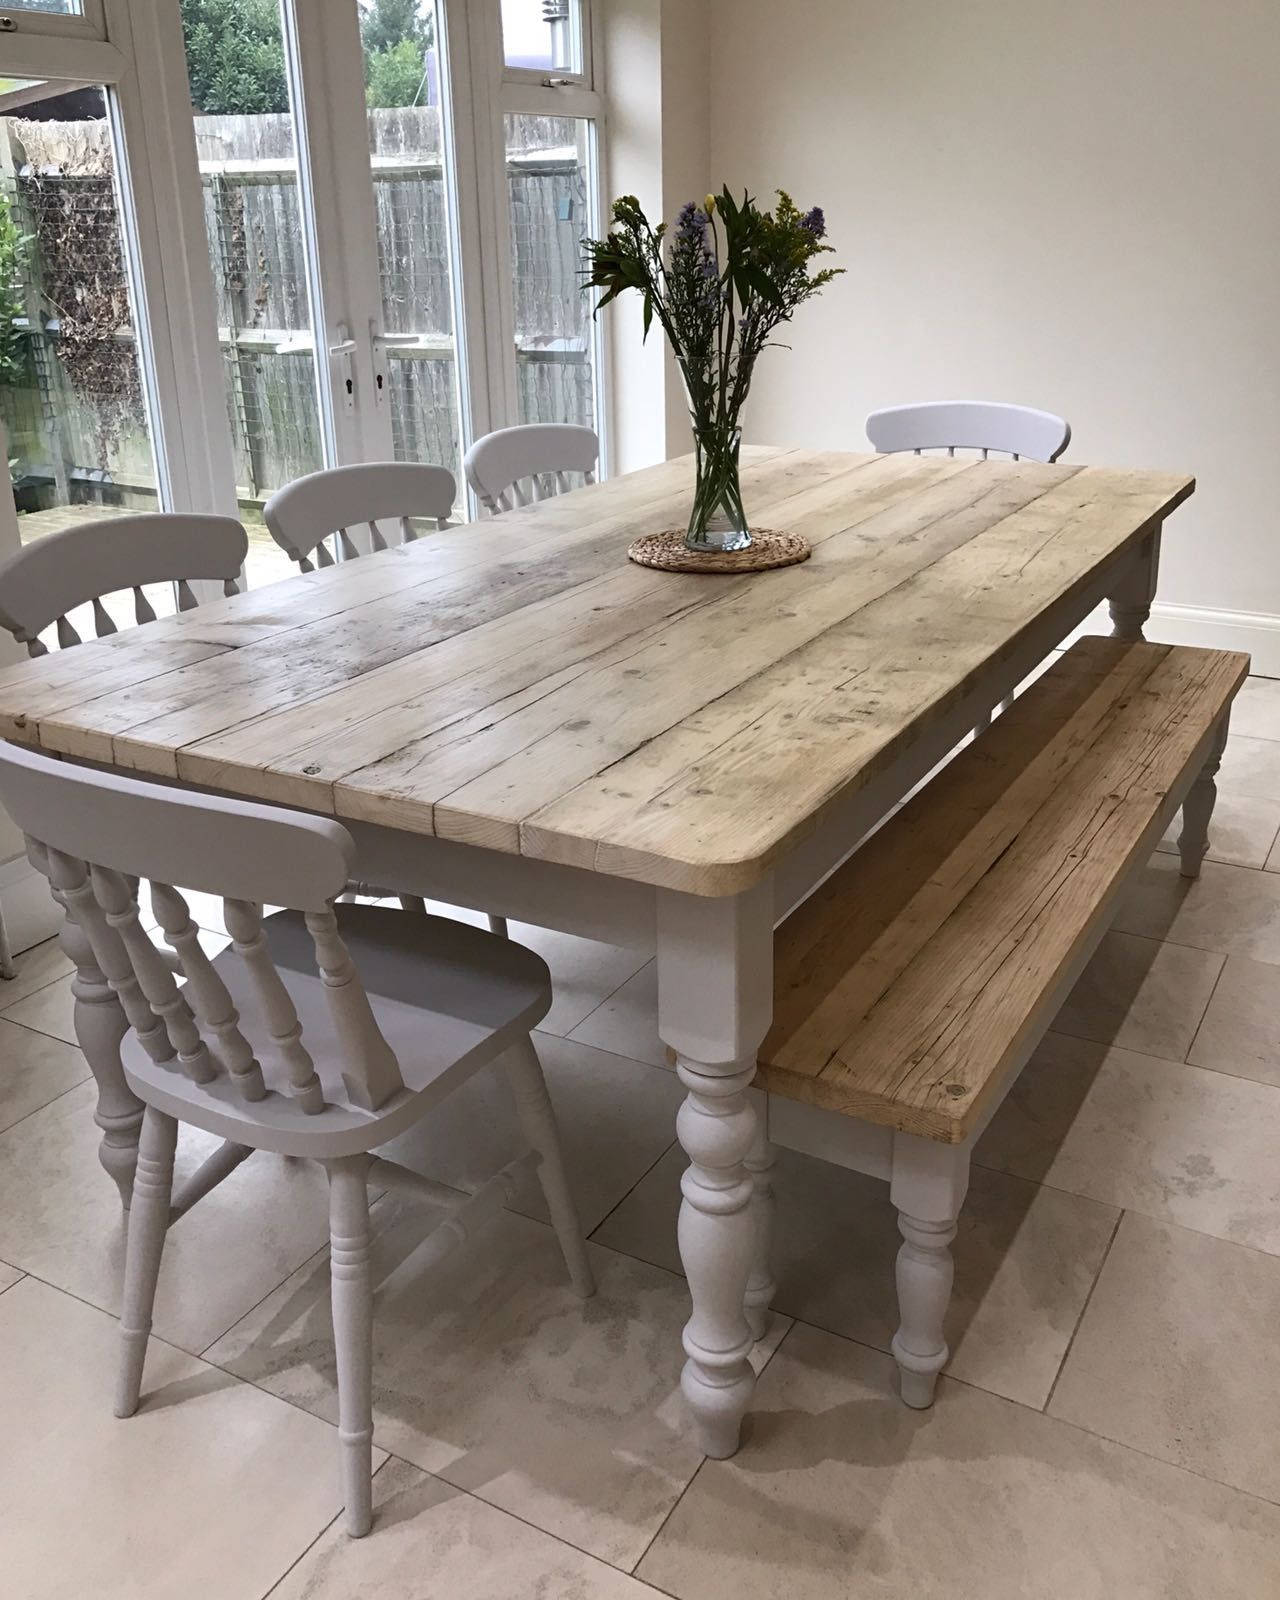 Wood Top Dining Tables Intended For Famous The Florence Clear' Table Made From Reclaimed Wood (View 6 of 25)